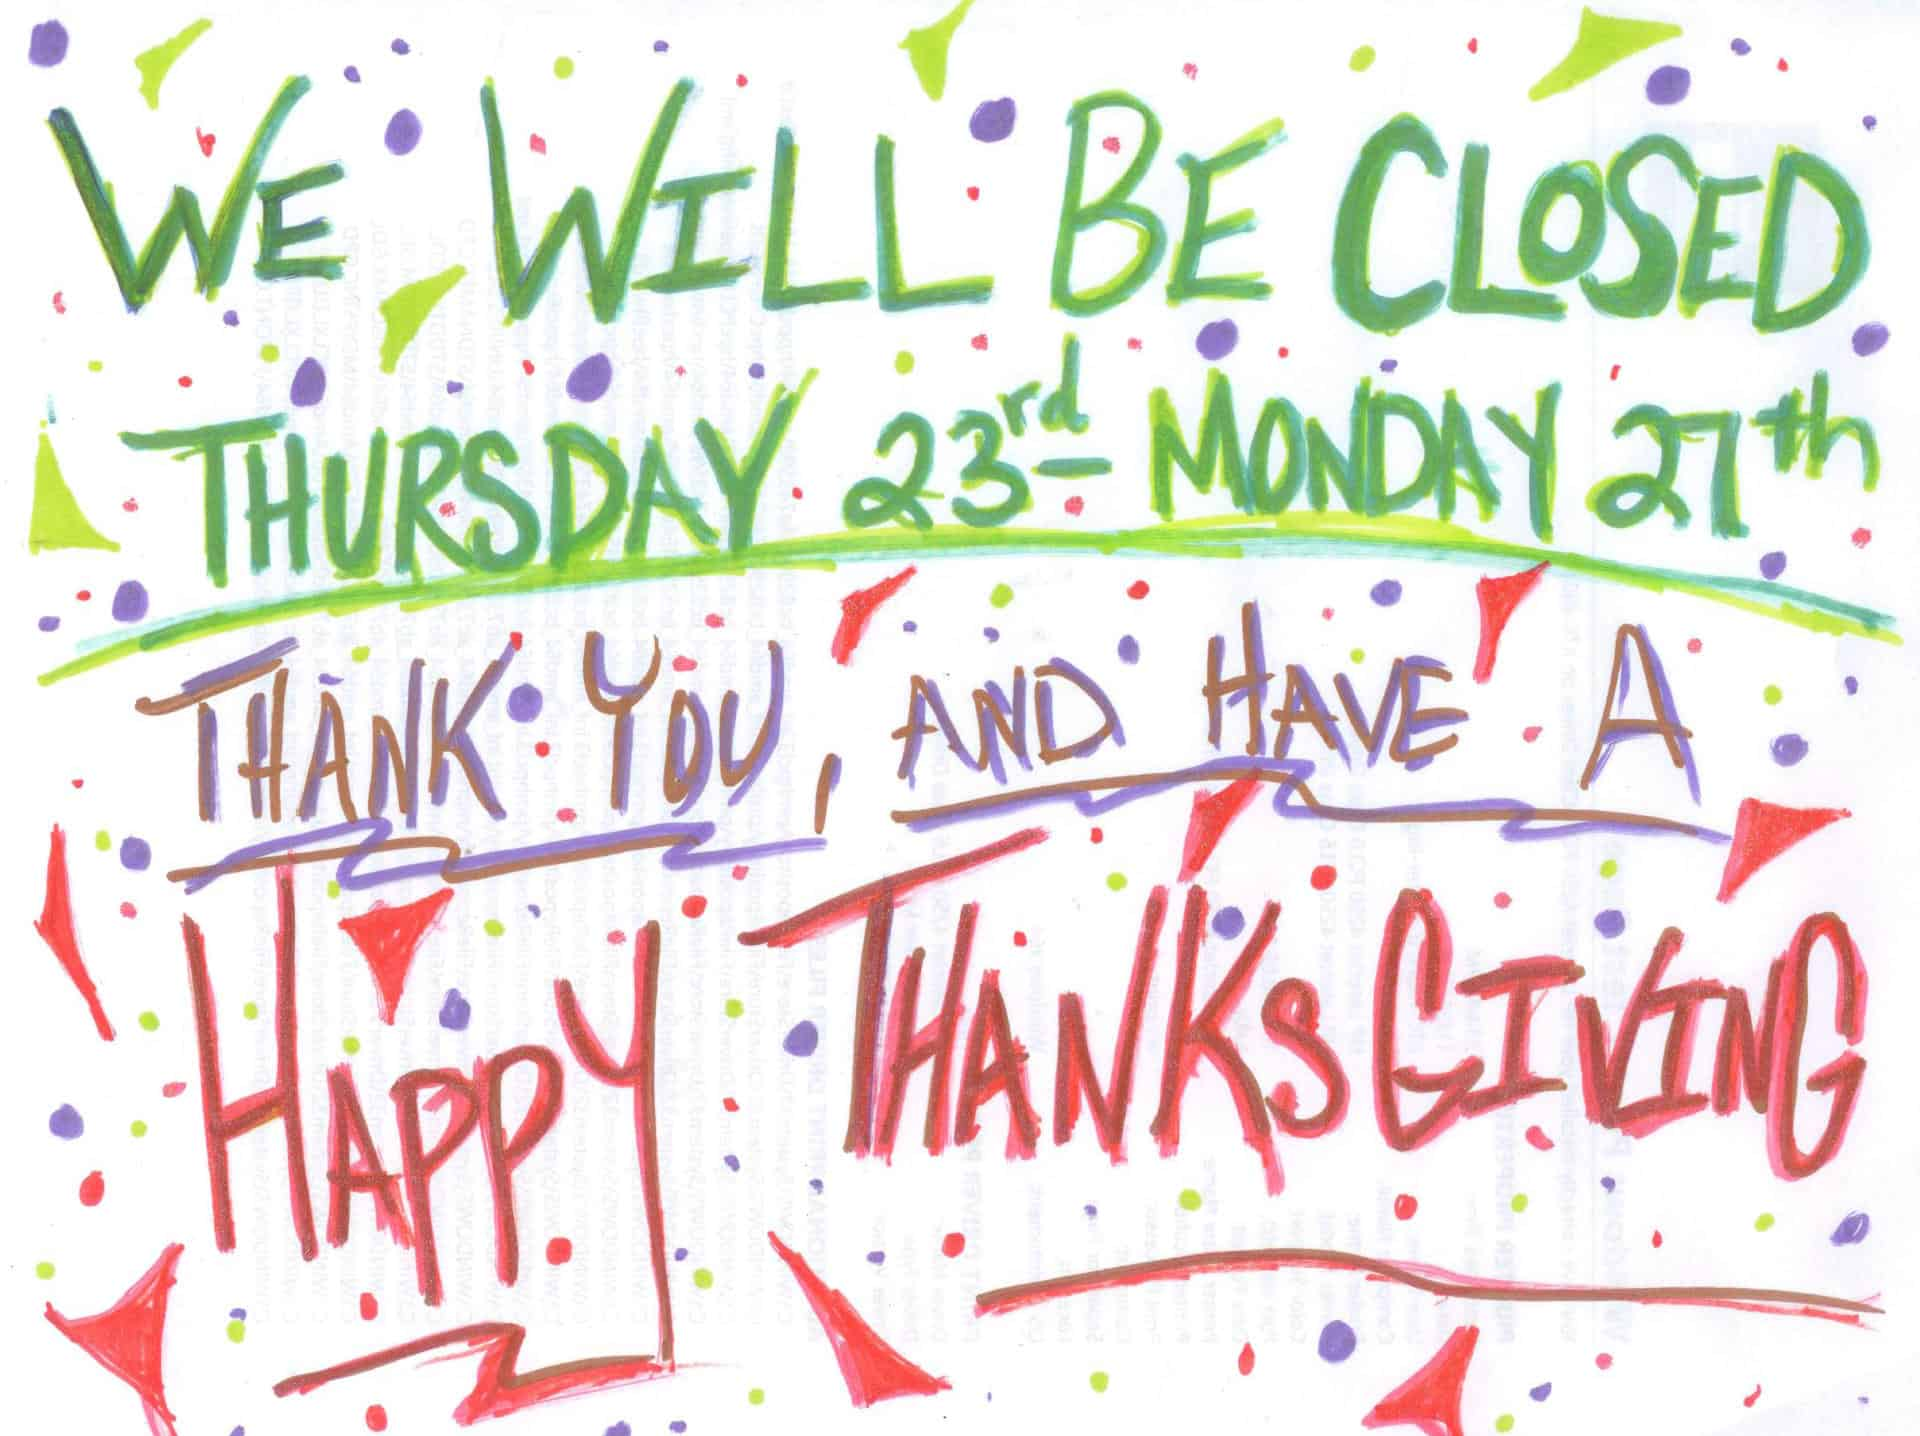 Holiday Hours, Holiday Hours, Knobtown Cycle